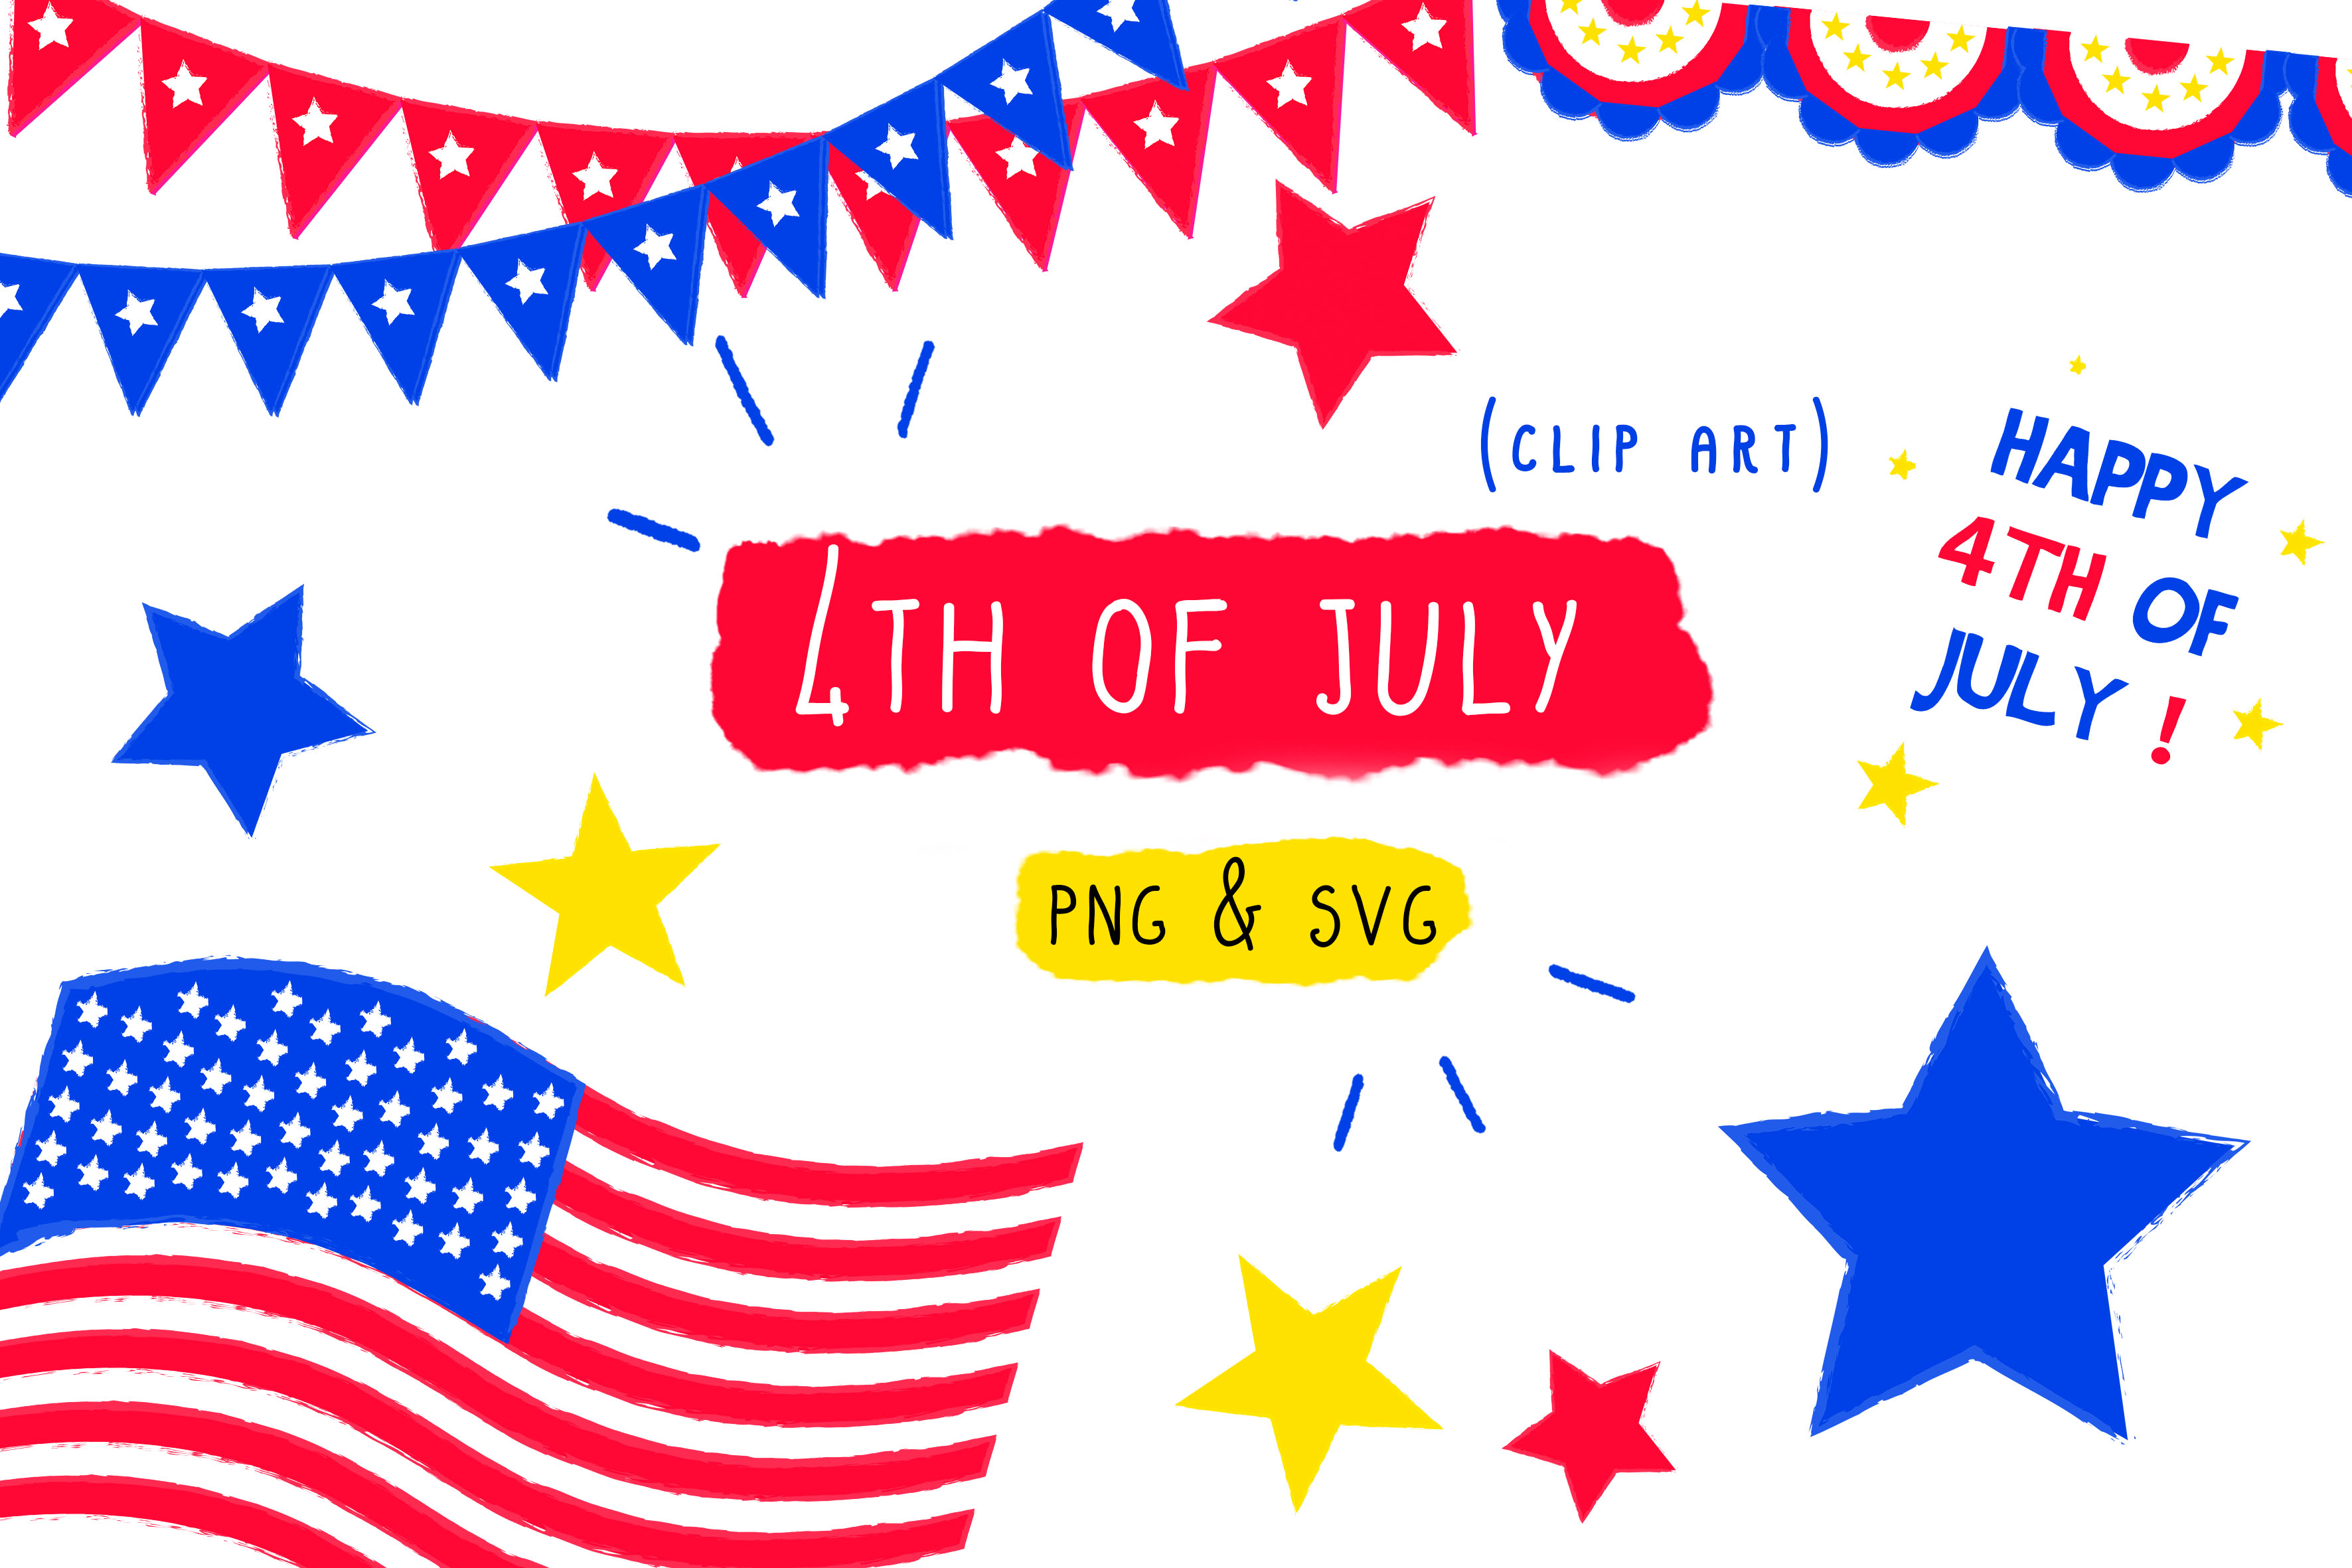 Download Free 4th Of July Usa Clip Art Graphic By Inkclouddesign Creative for Cricut Explore, Silhouette and other cutting machines.